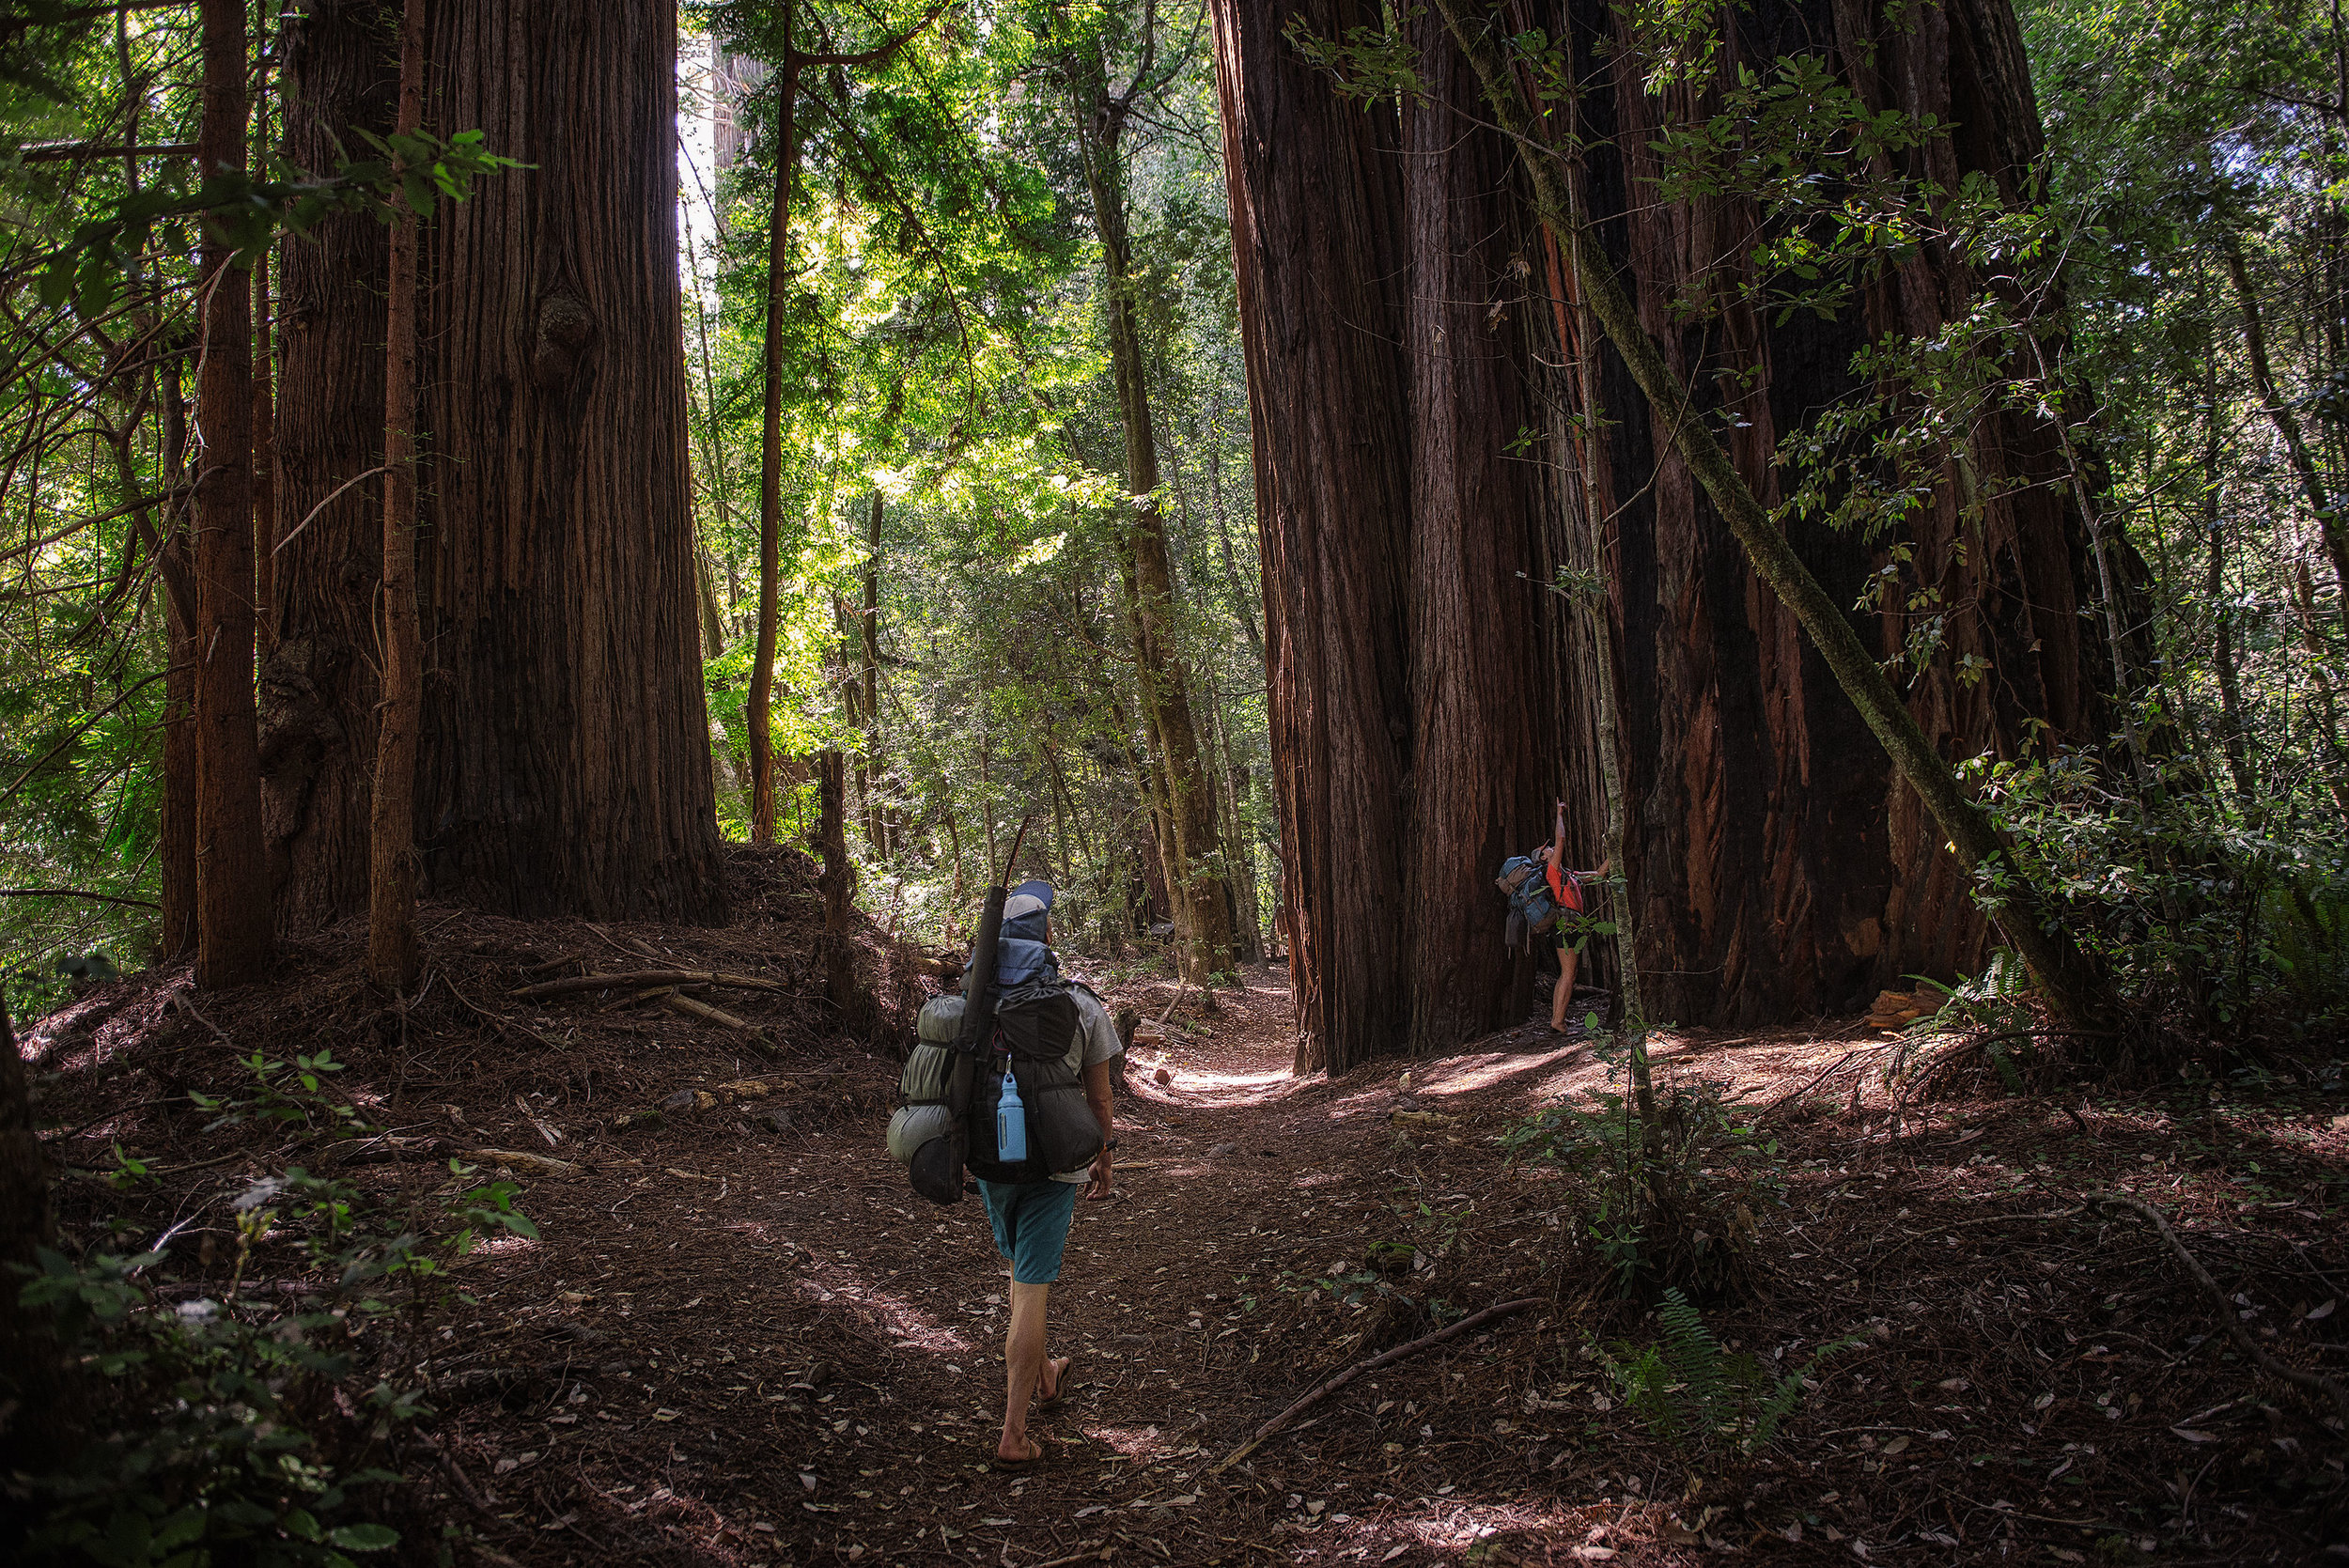 austin-trigg-redwood-water-bottle-tall-trees-grove-backpacking-hiking-big-forest-adventure.jpg